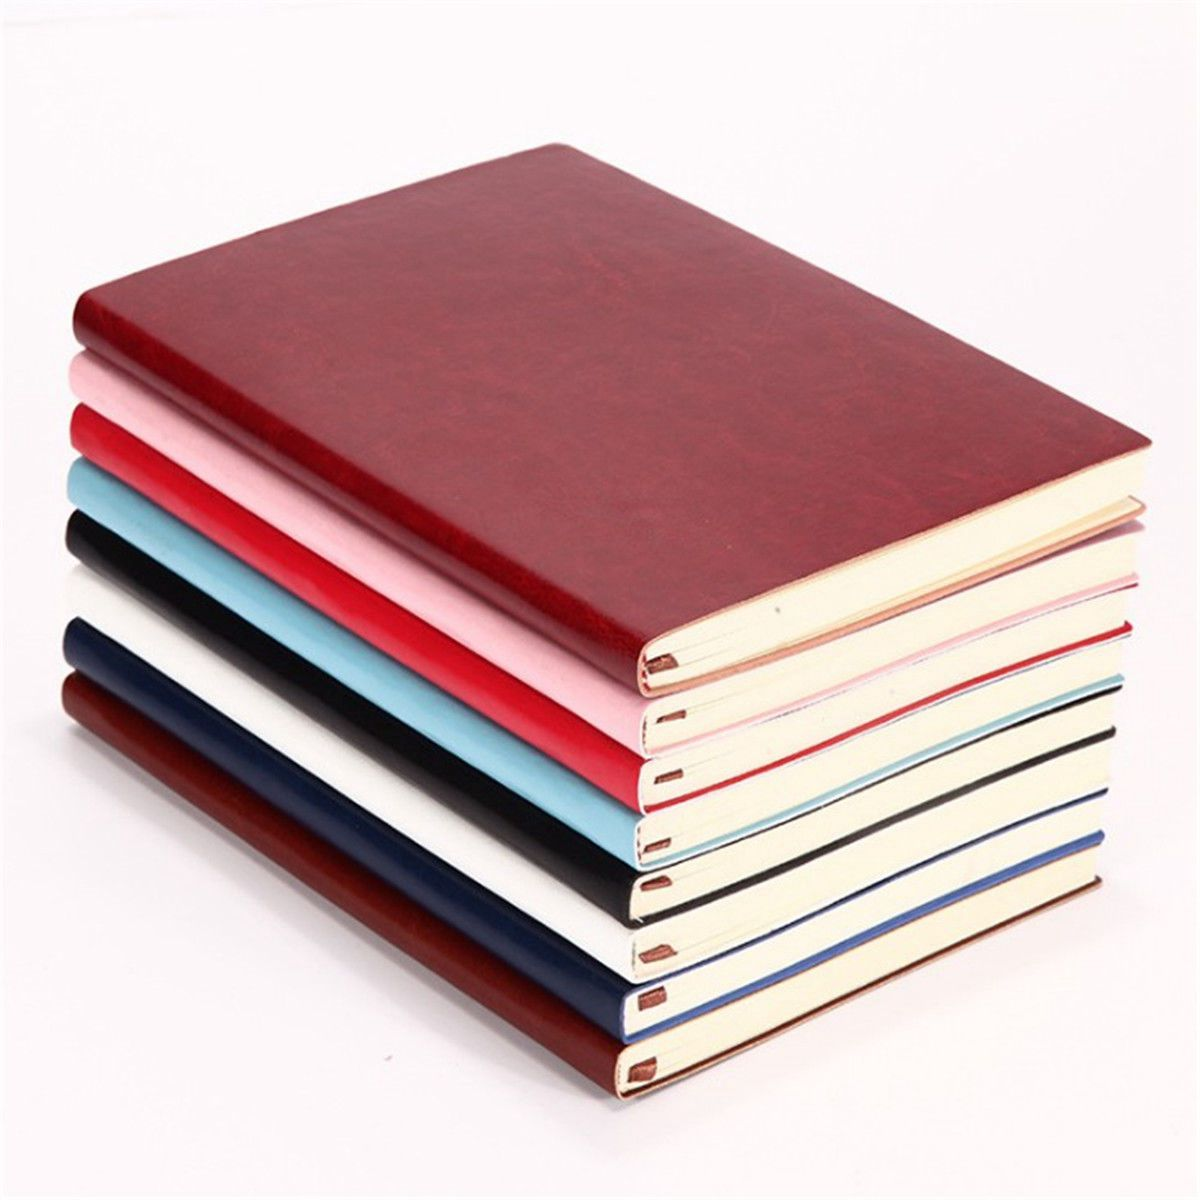 6 Color Random Soft Cover PU Leather Notebook Writing Journal 100 Page Lined Diary Book etm indy css page 5 page 6